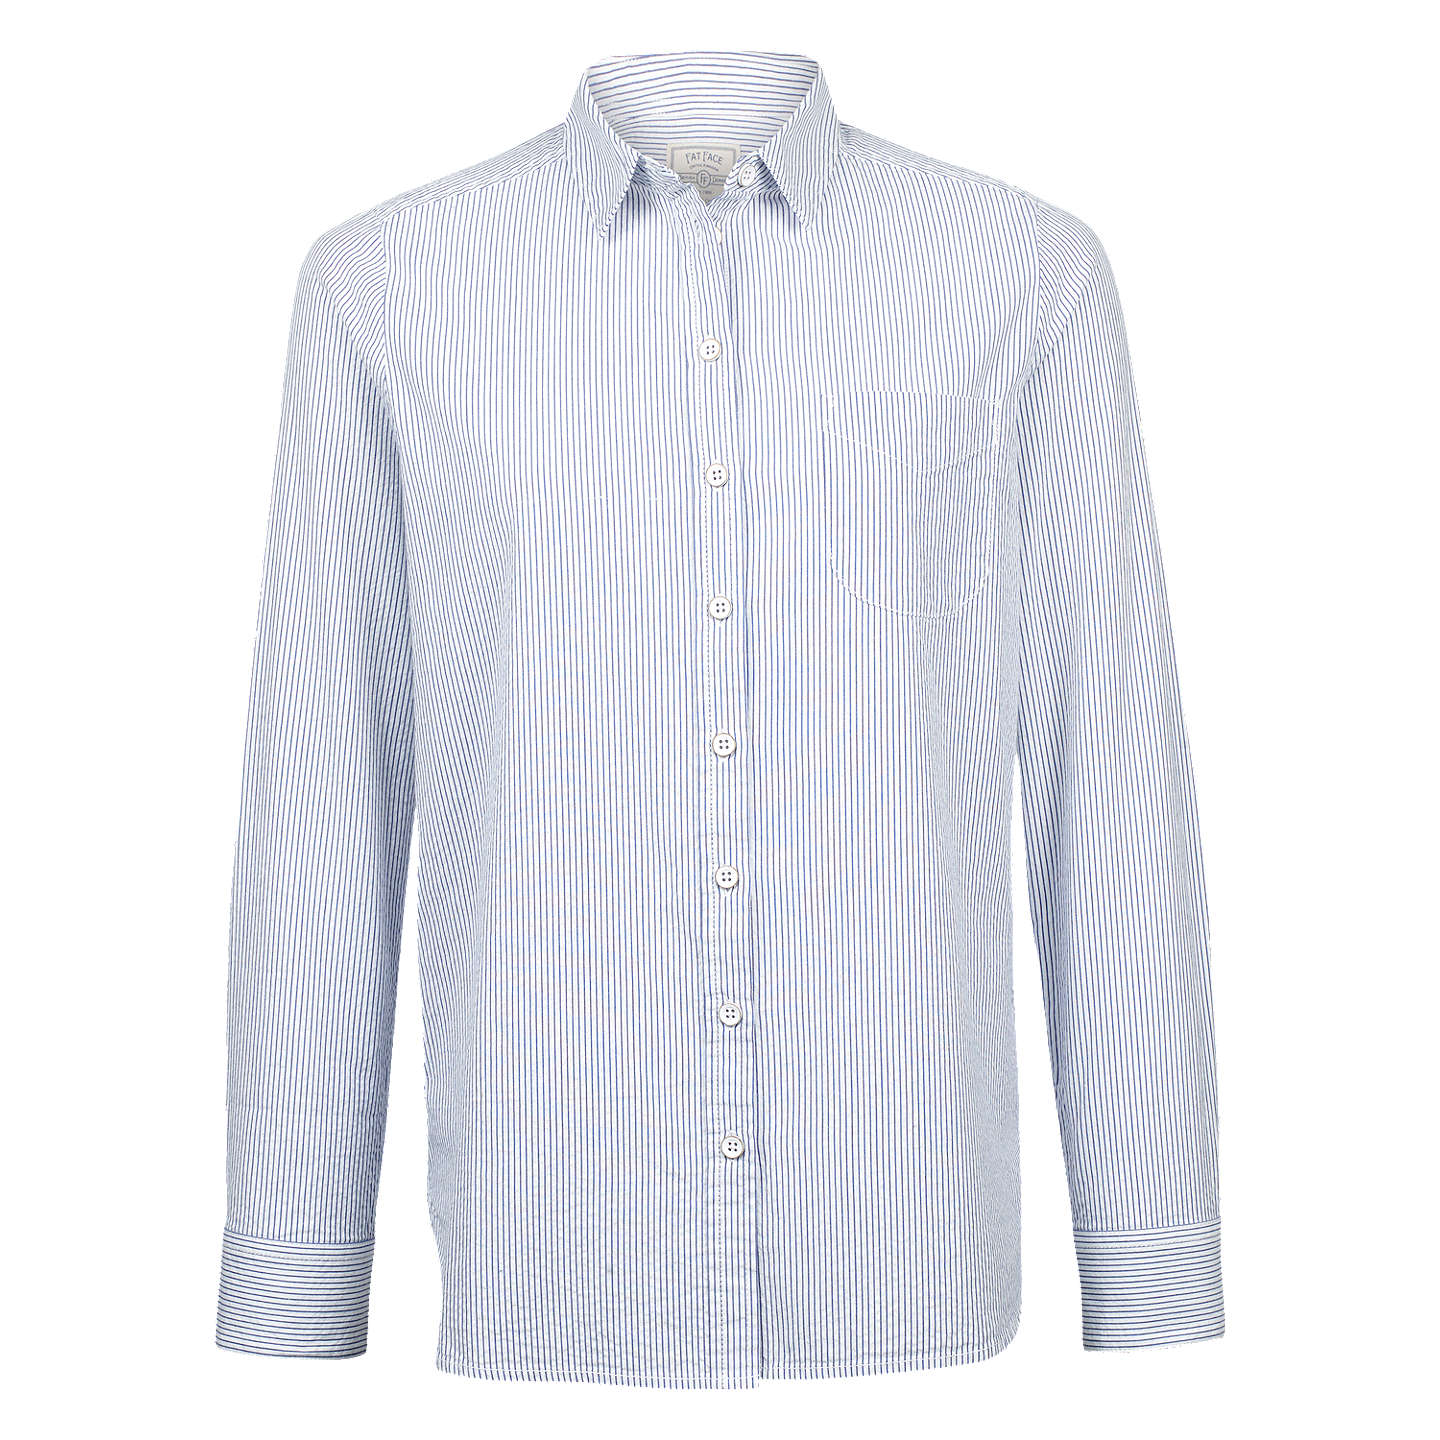 BuyFat Face Olivia Striped Shirt, Chambray, 6 Online at johnlewis.com